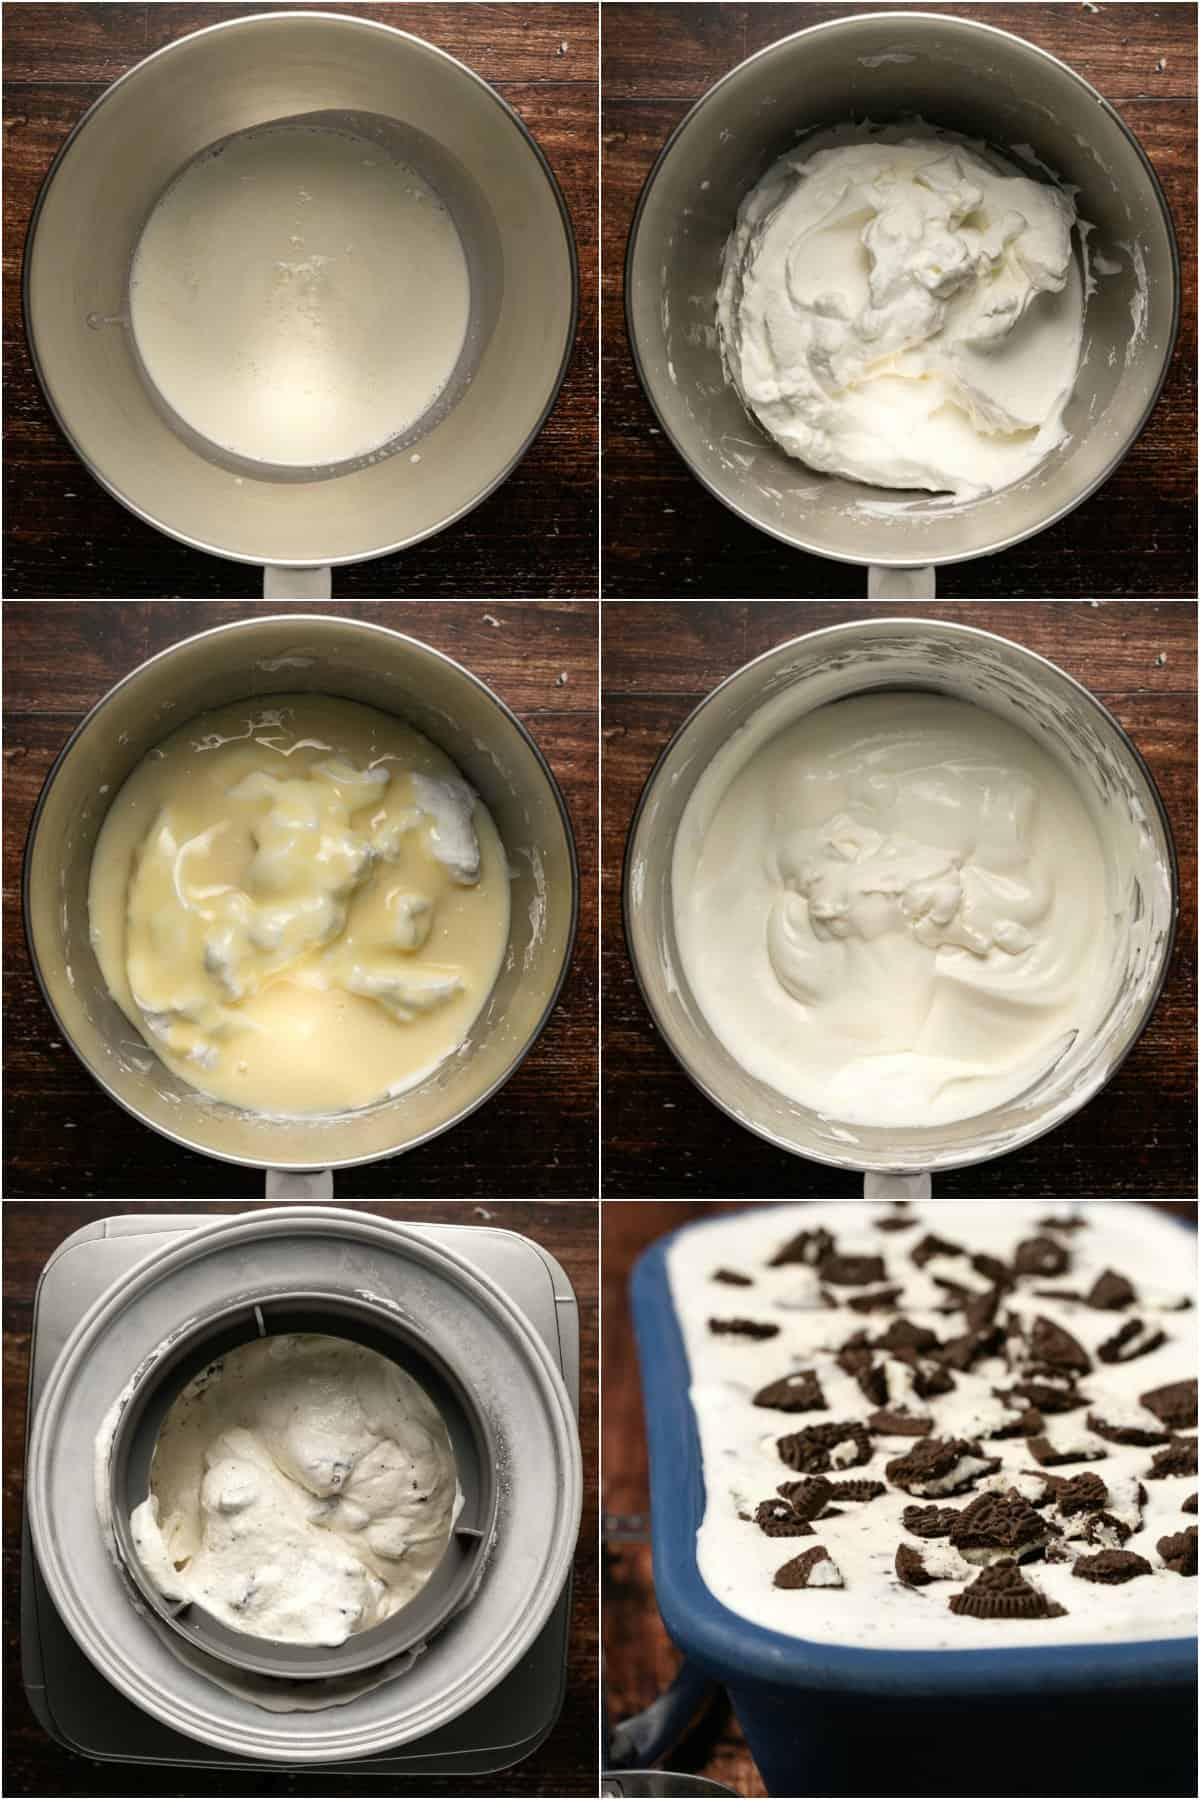 Step by step process photo collage of making a cookies and cream ice cream.